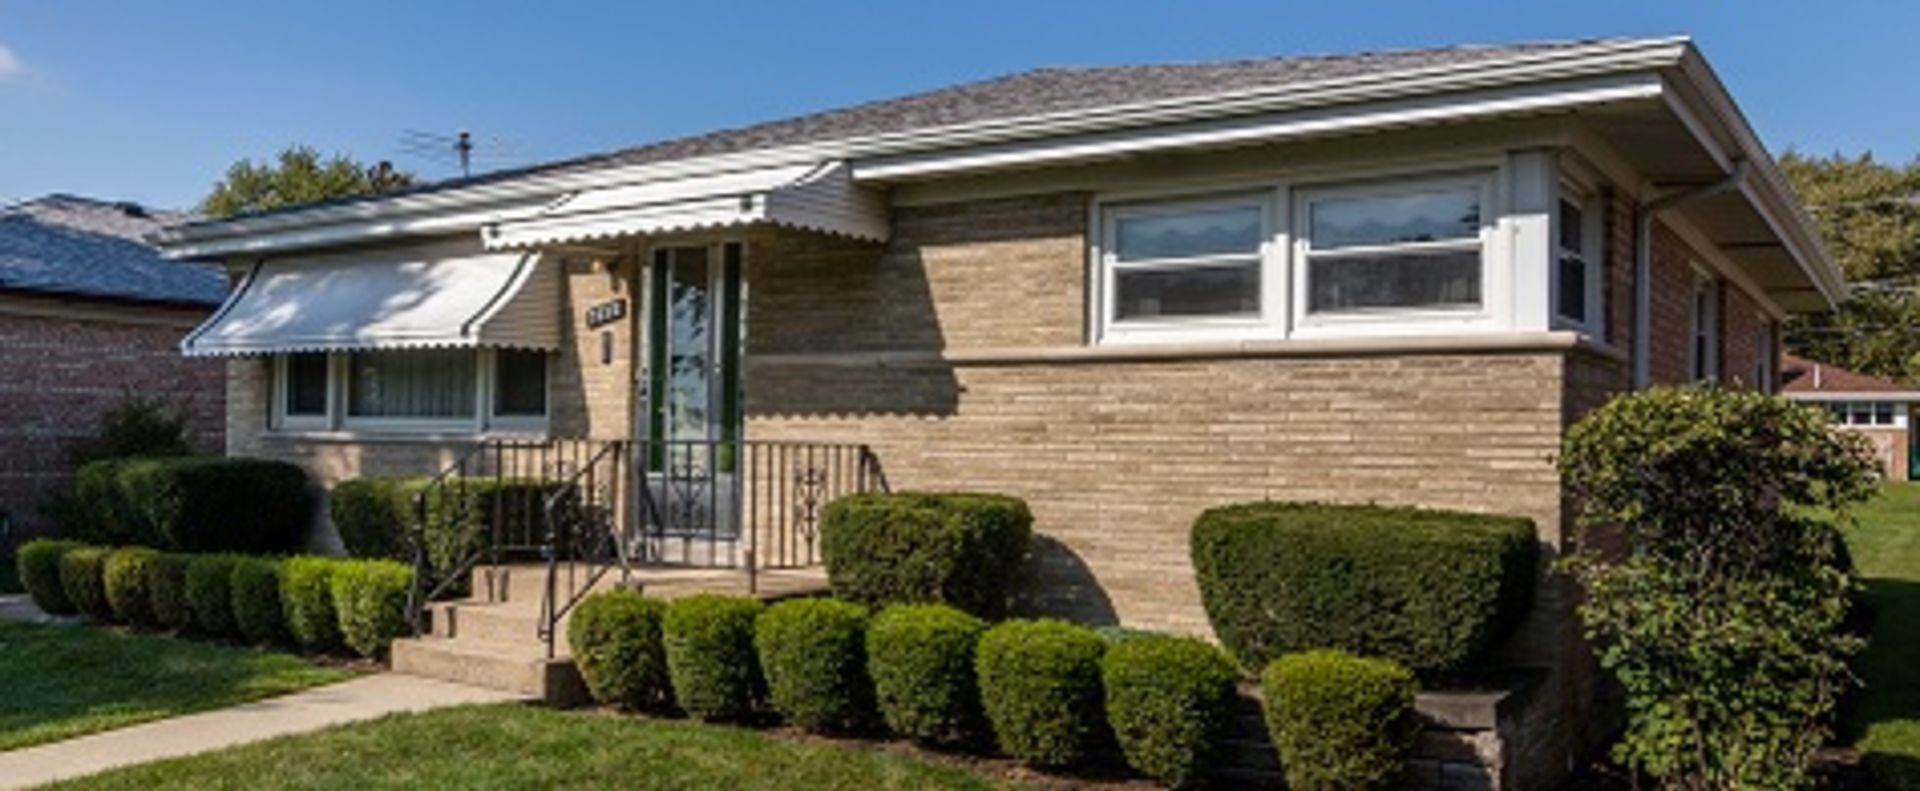 Open house October 22, 2017, 1-3 pm, 7030 W Cleveland, Niles, IL 60714